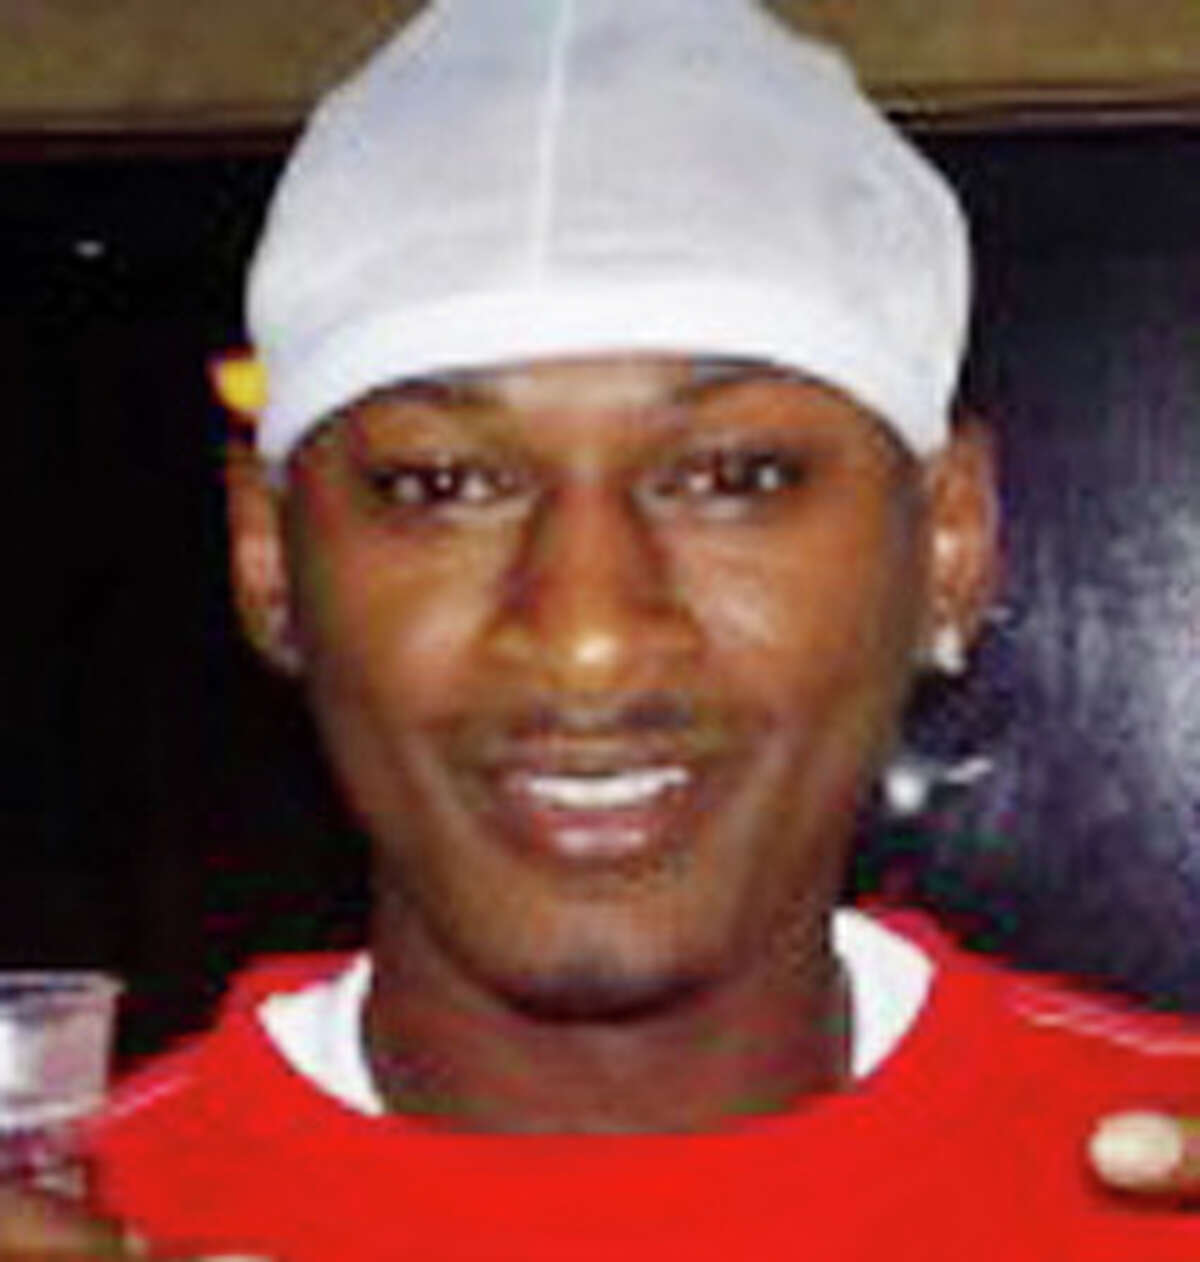 Photo taken from the FaceBook page shows Sha-kim Miller, the 36-year-old Troy rapper prosecutors said was gunned down in March. photo captioned by (Paul Buckowski / Times Union)